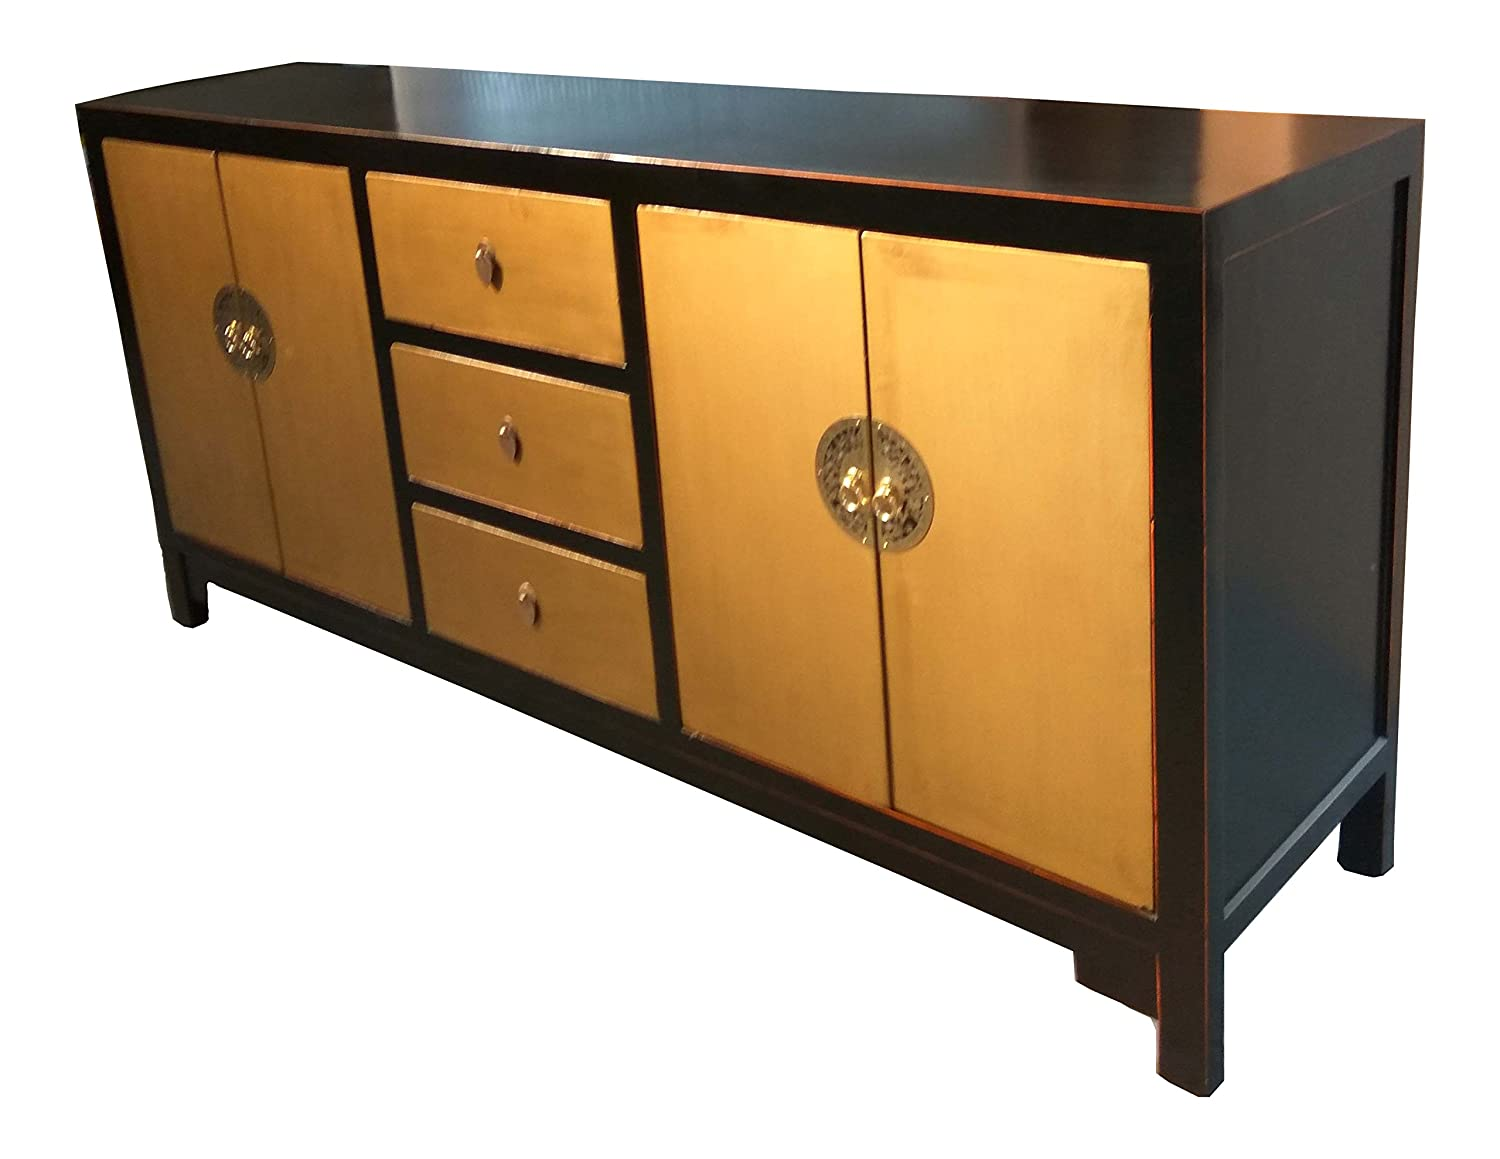 opium outlet tv kommode sideboard aus china in goldoptik aus holz g nstig online kaufen. Black Bedroom Furniture Sets. Home Design Ideas